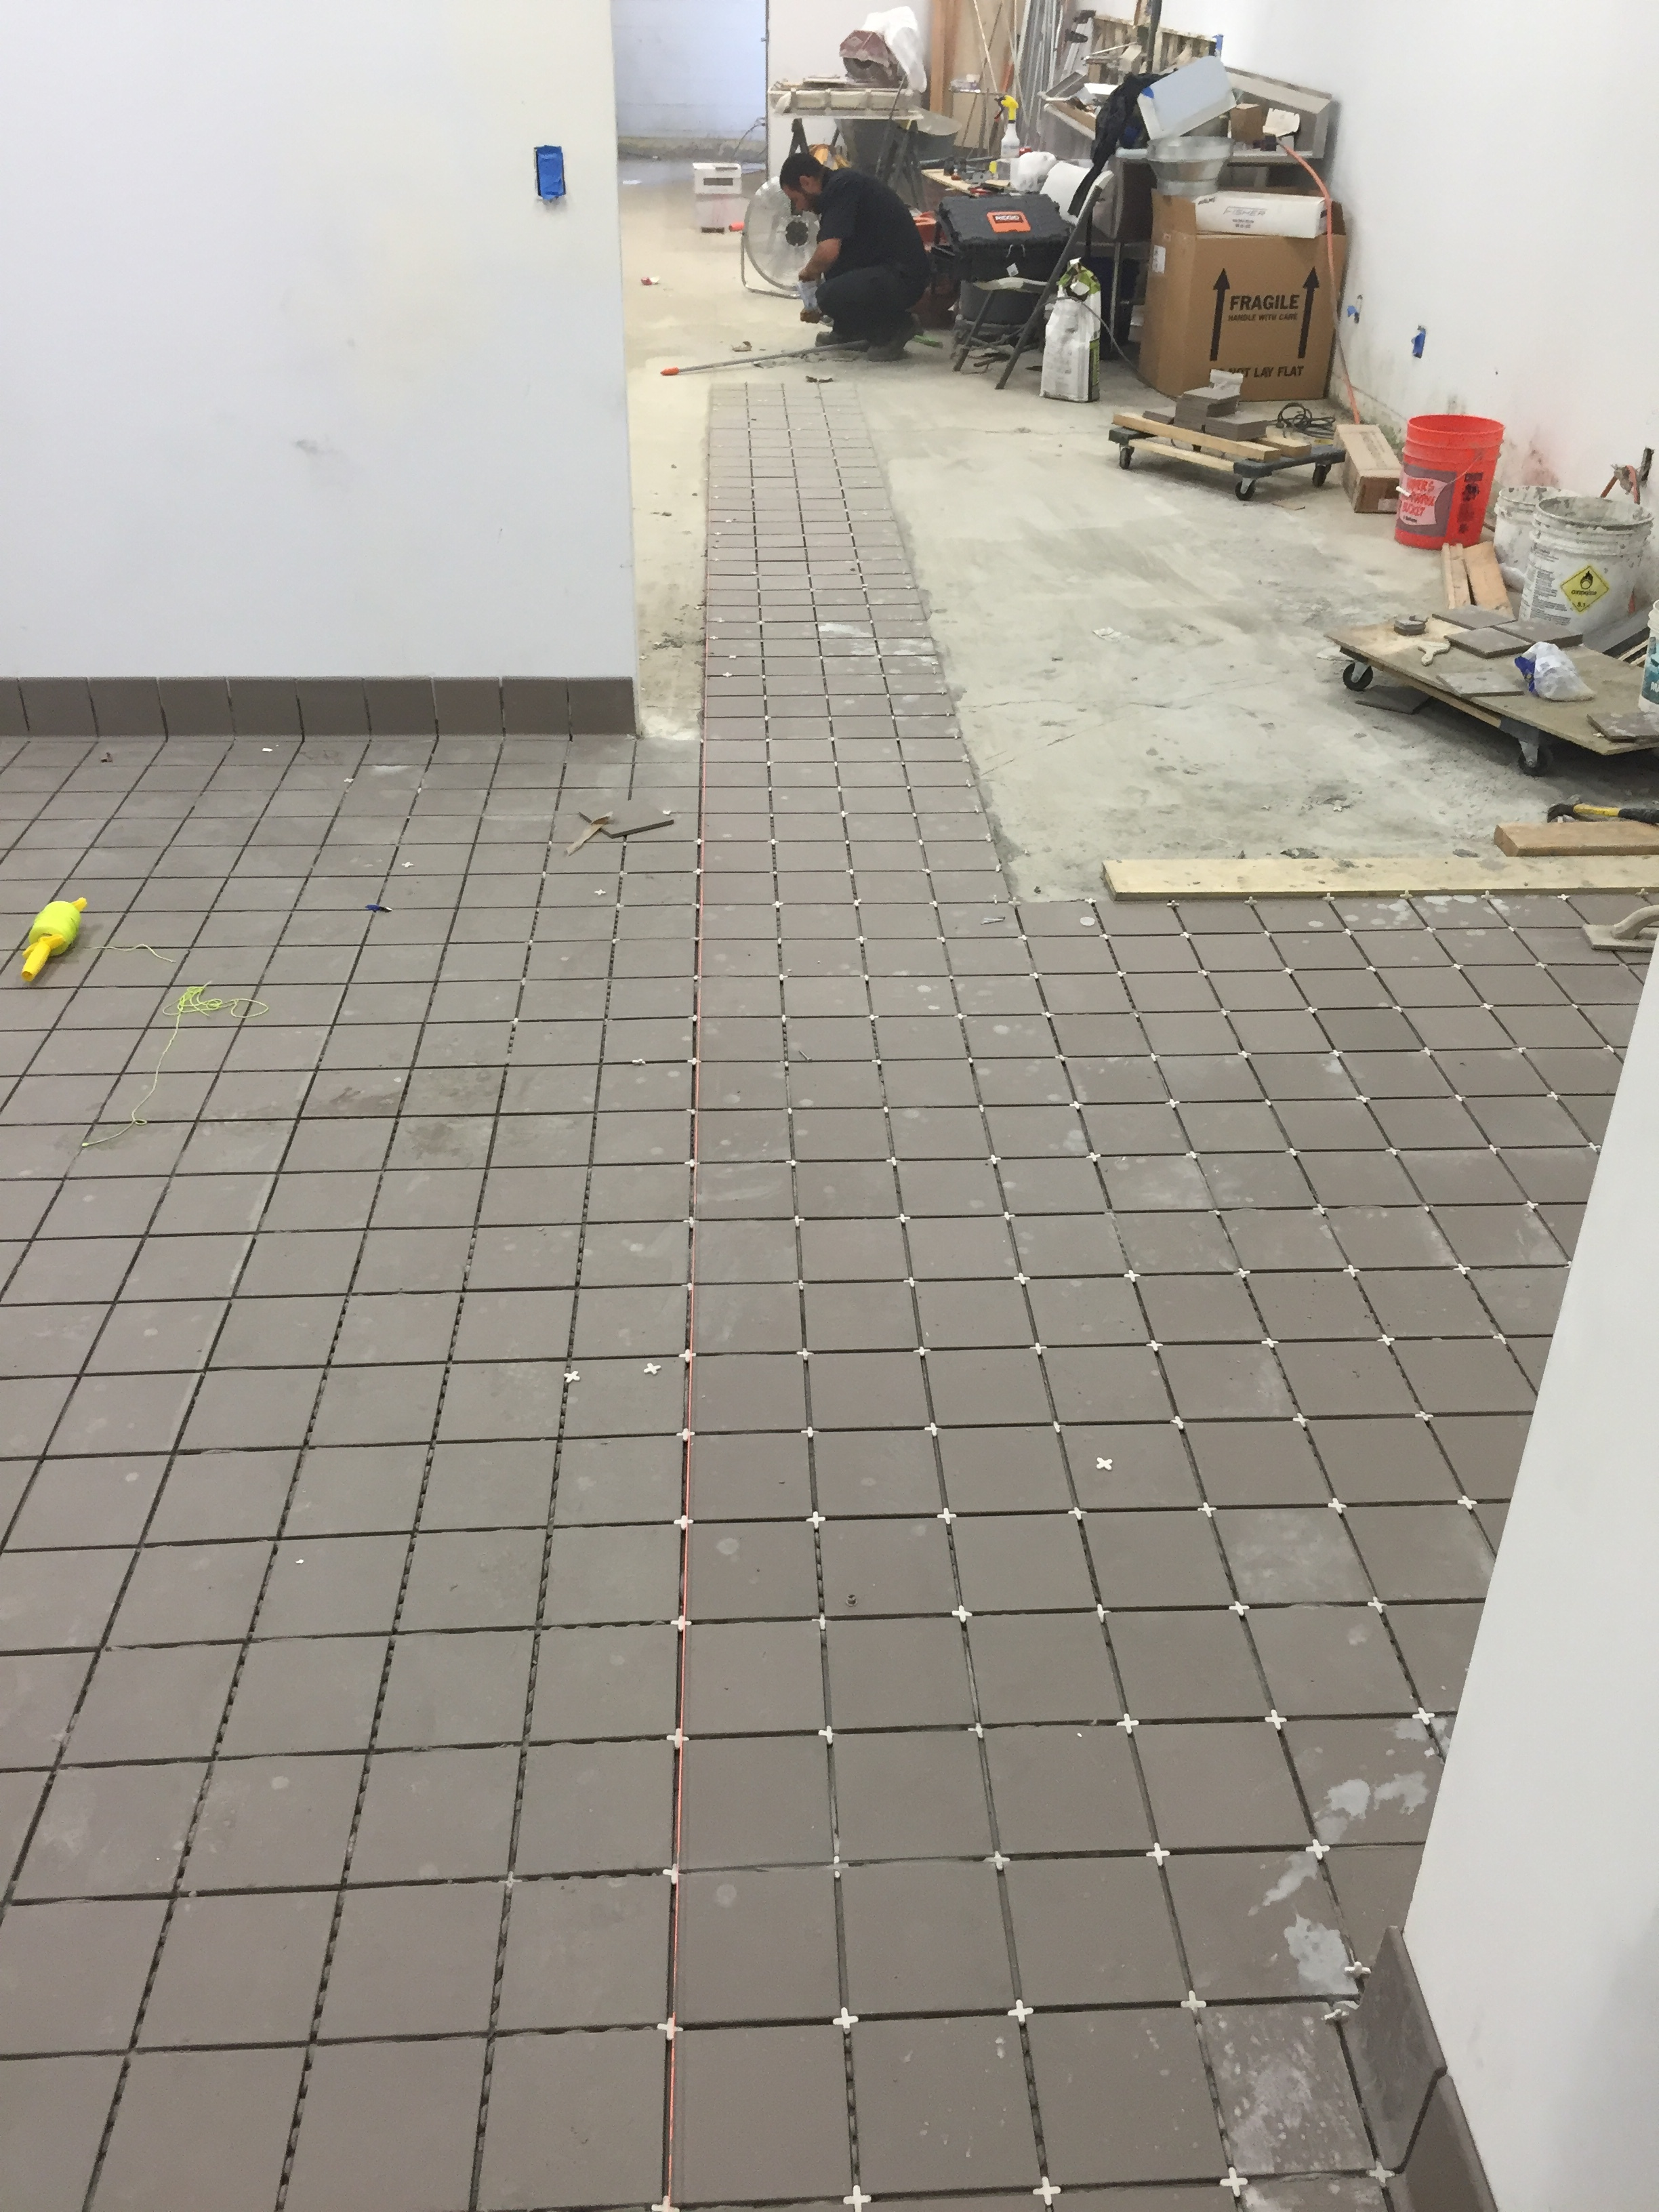 Starting to tile the kitchen